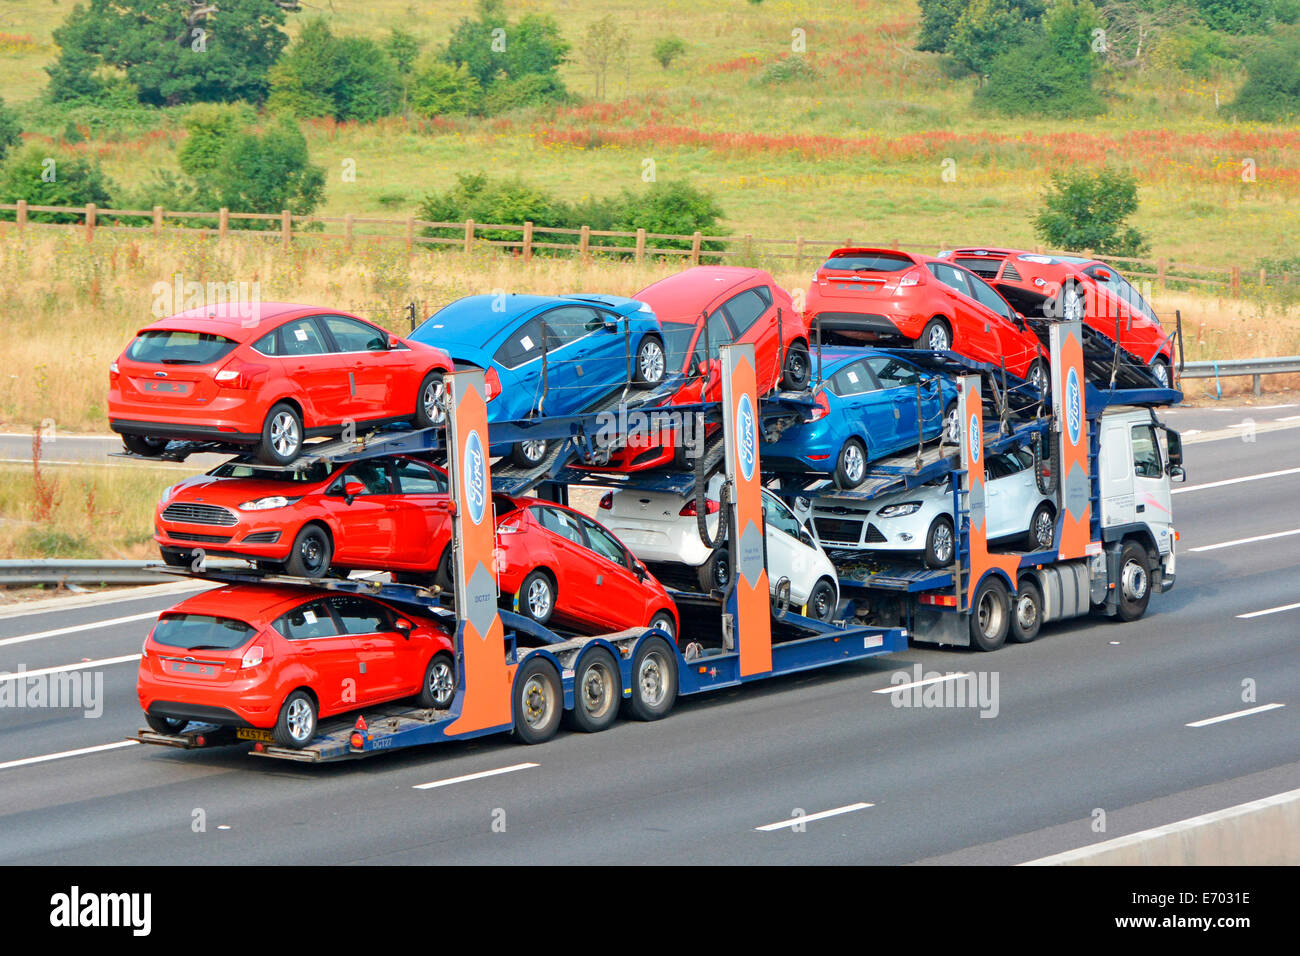 Ford Car Transporter And Trailer Loaded With Eleven New Red White And Blue Vehicles Stock